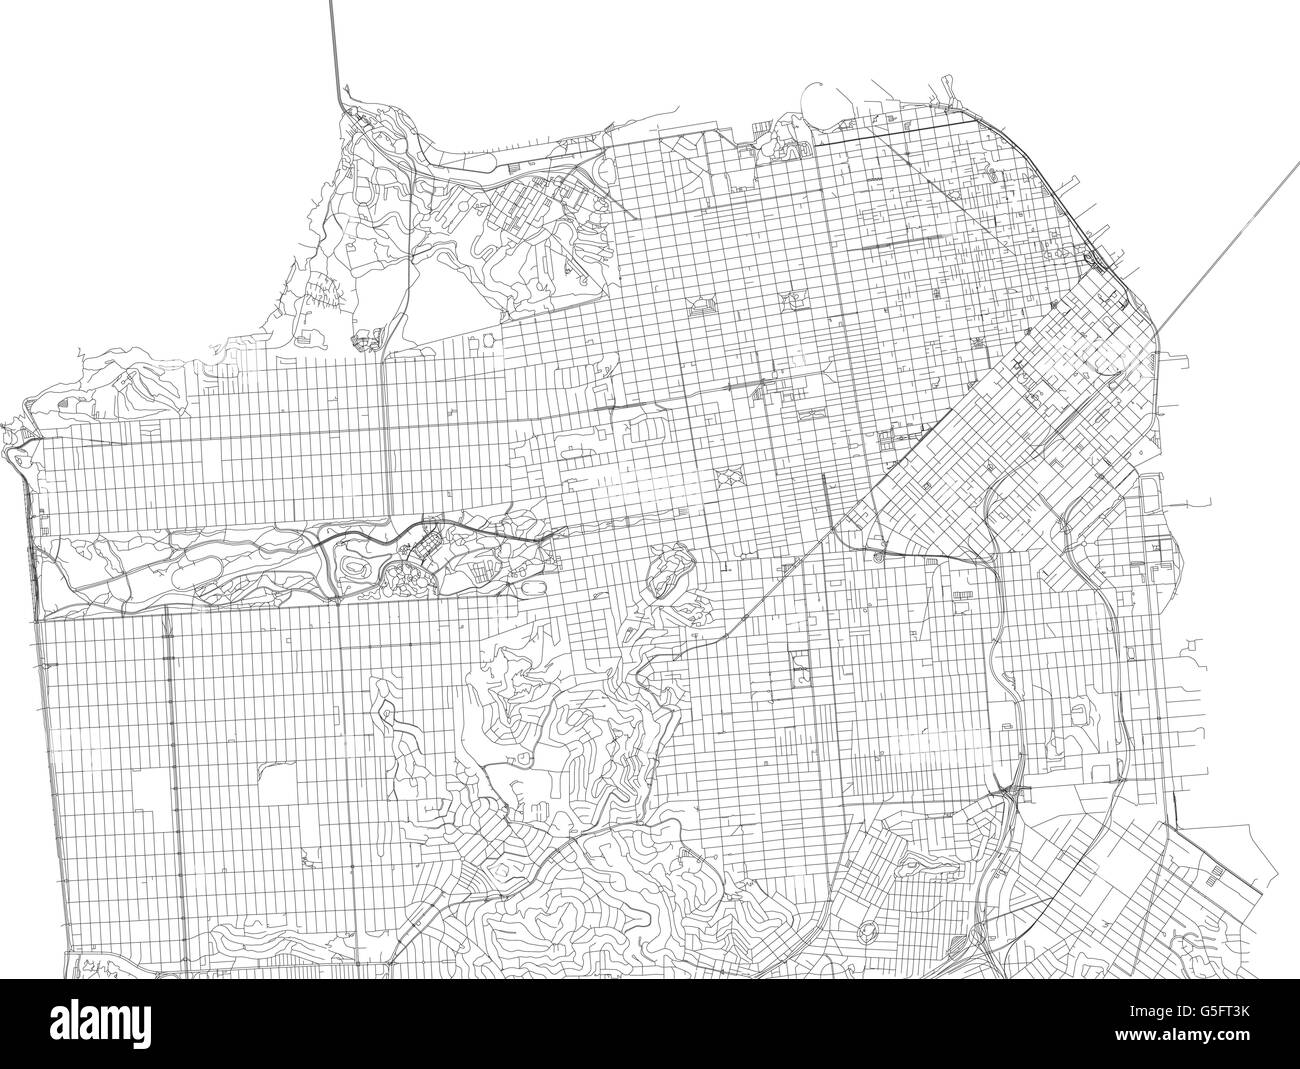 San Francisco Map Black and White Stock Photos & Images - Alamy on las vegas map usa, wilmington map usa, minneapolis map usa, seattle map usa, sacramento map usa, nyc map usa, san fran bay map usa, new orleans map usa, st louis map usa, montgomery map usa, maui map usa, montreal map usa, portland map usa, little rock map usa, baton rouge map usa, lake erie map usa, augusta map usa, boise map usa, tacoma map usa, miami map usa,